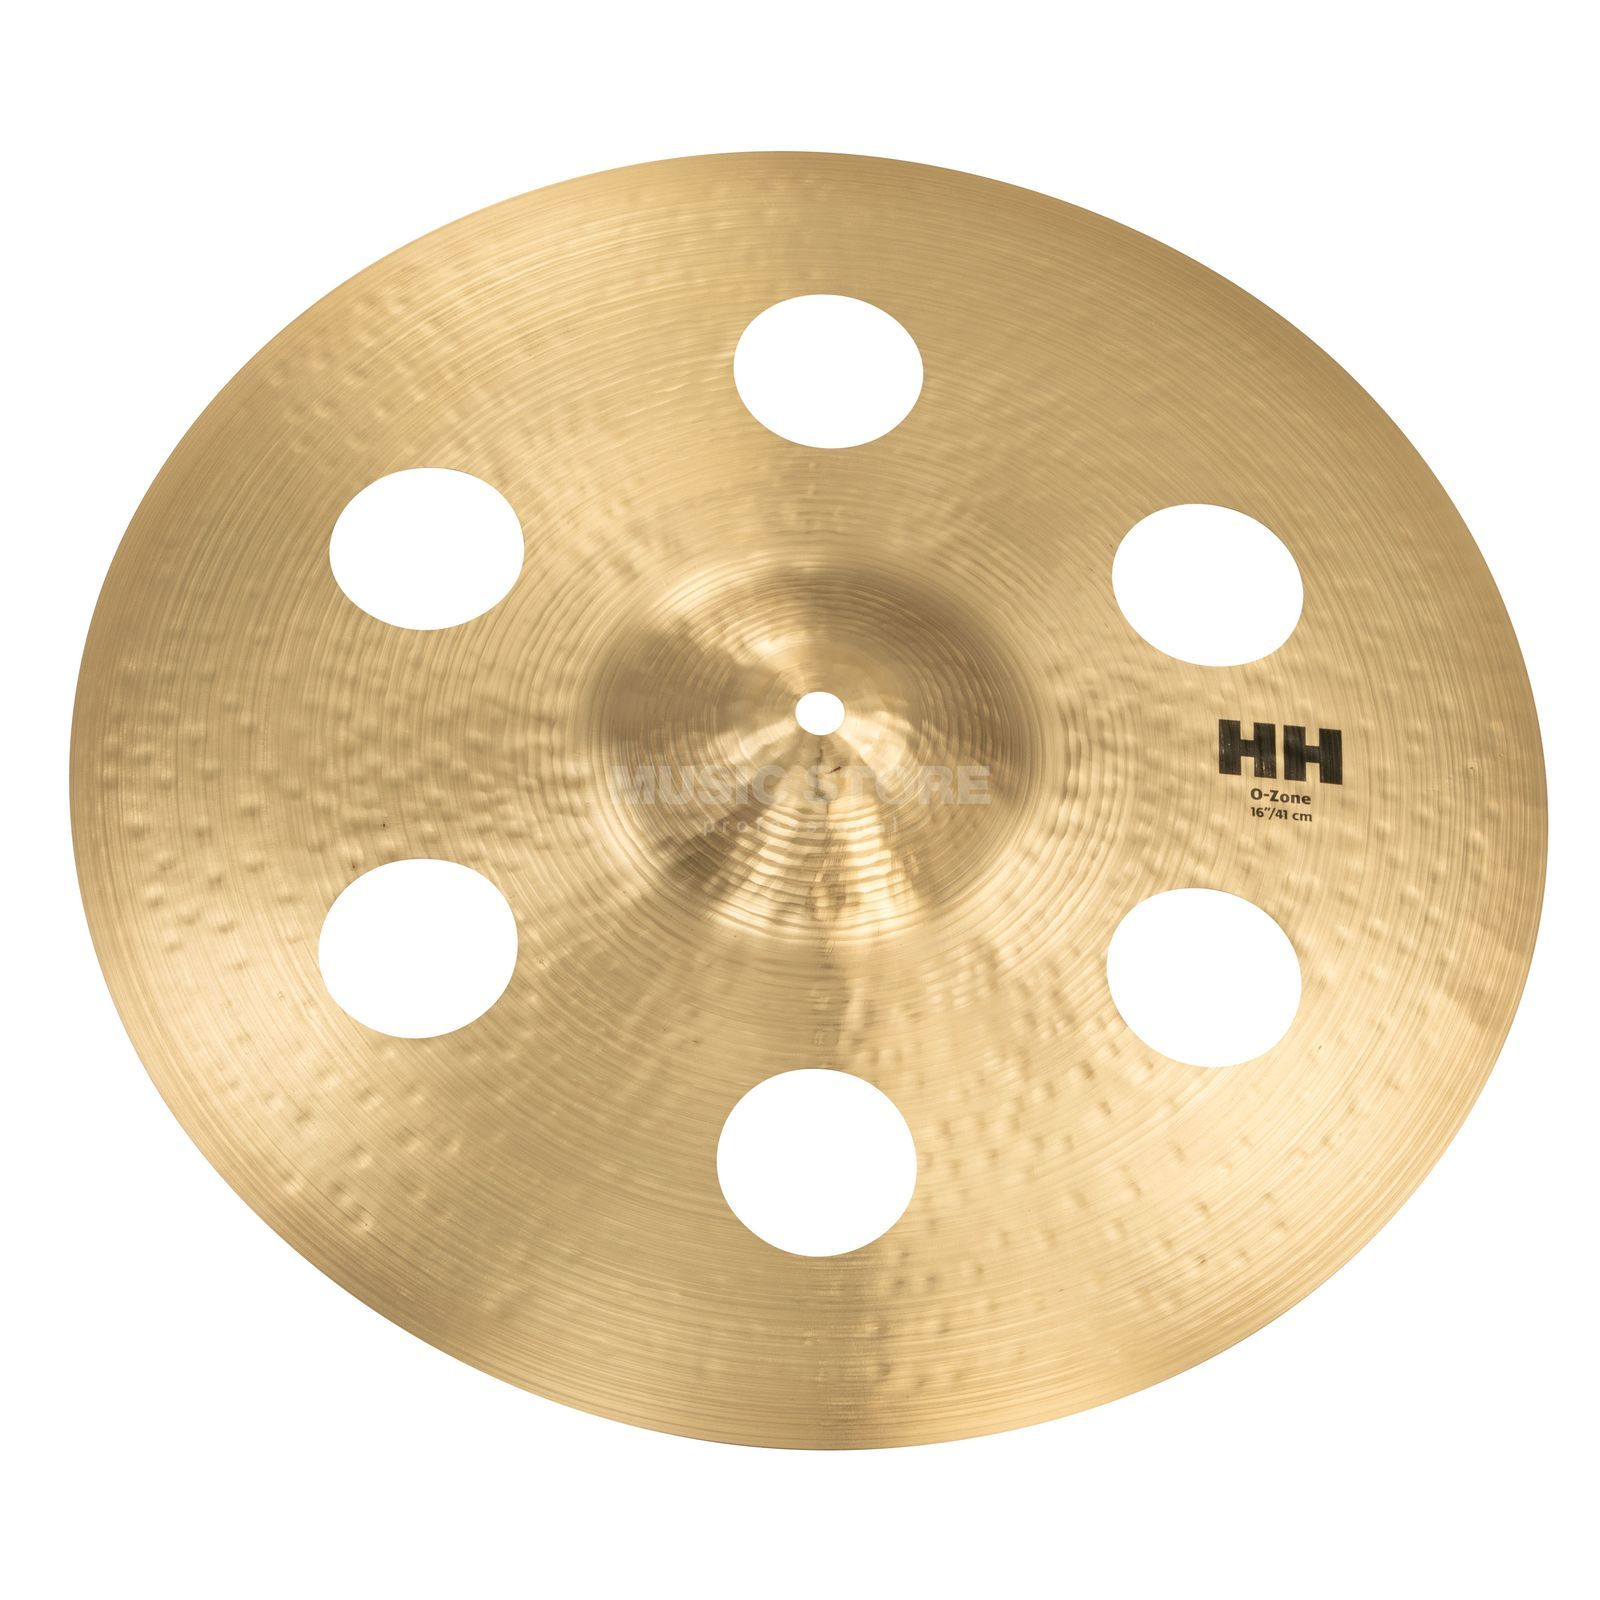 "Sabian HH Remastered O-Zone 16"" Product Image"